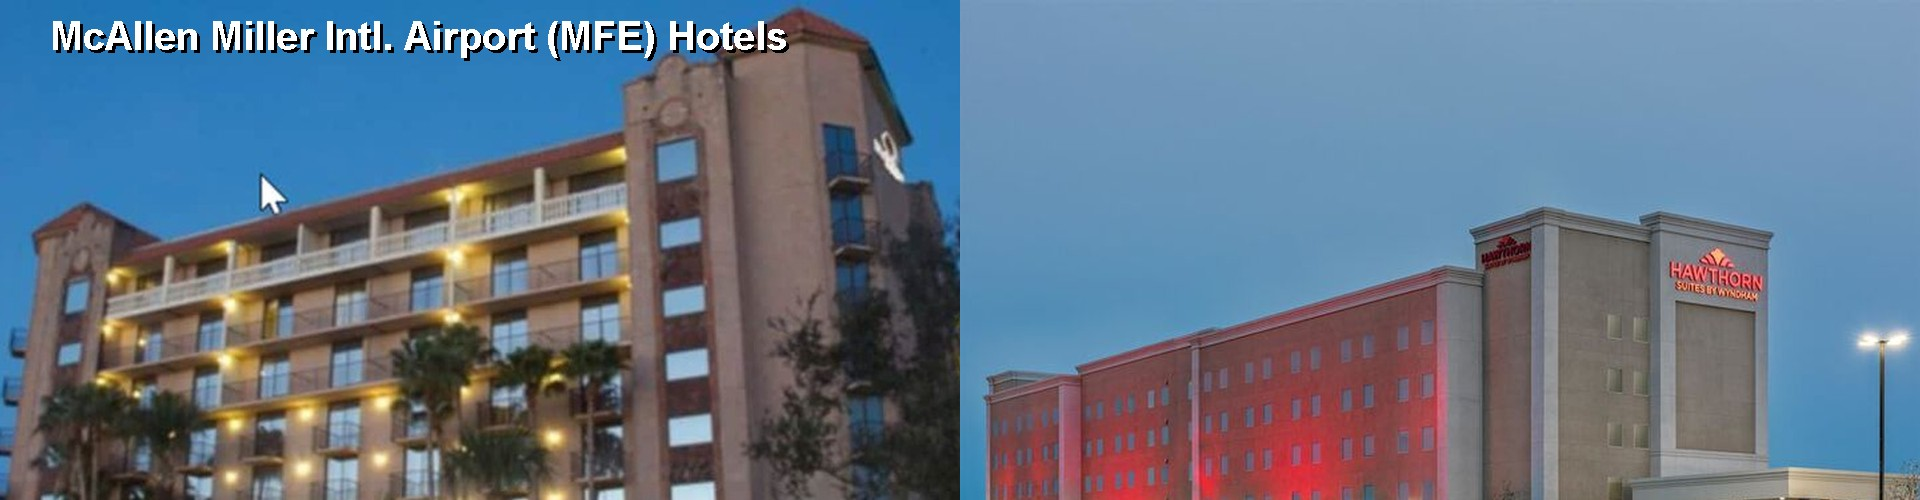 5 Best Hotels near McAllen Miller Intl. Airport (MFE)